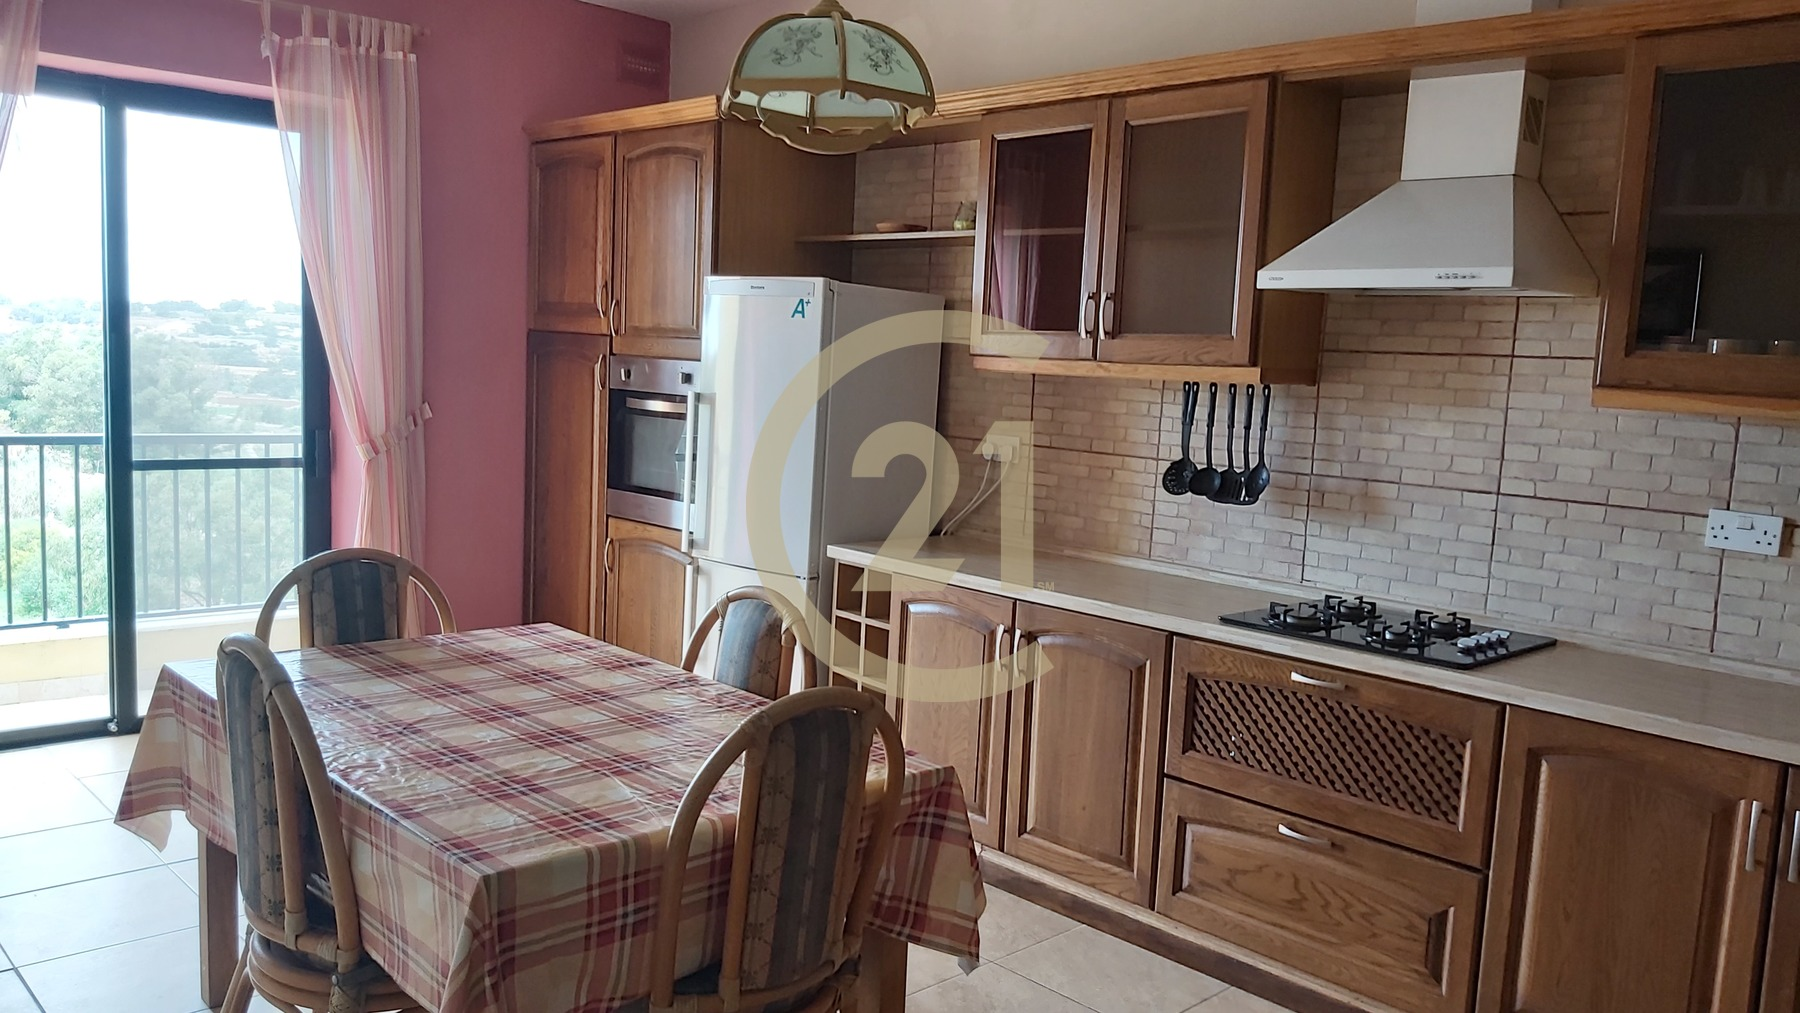 Furnished 3 Bedroom Apartment For Rent In Marsascala